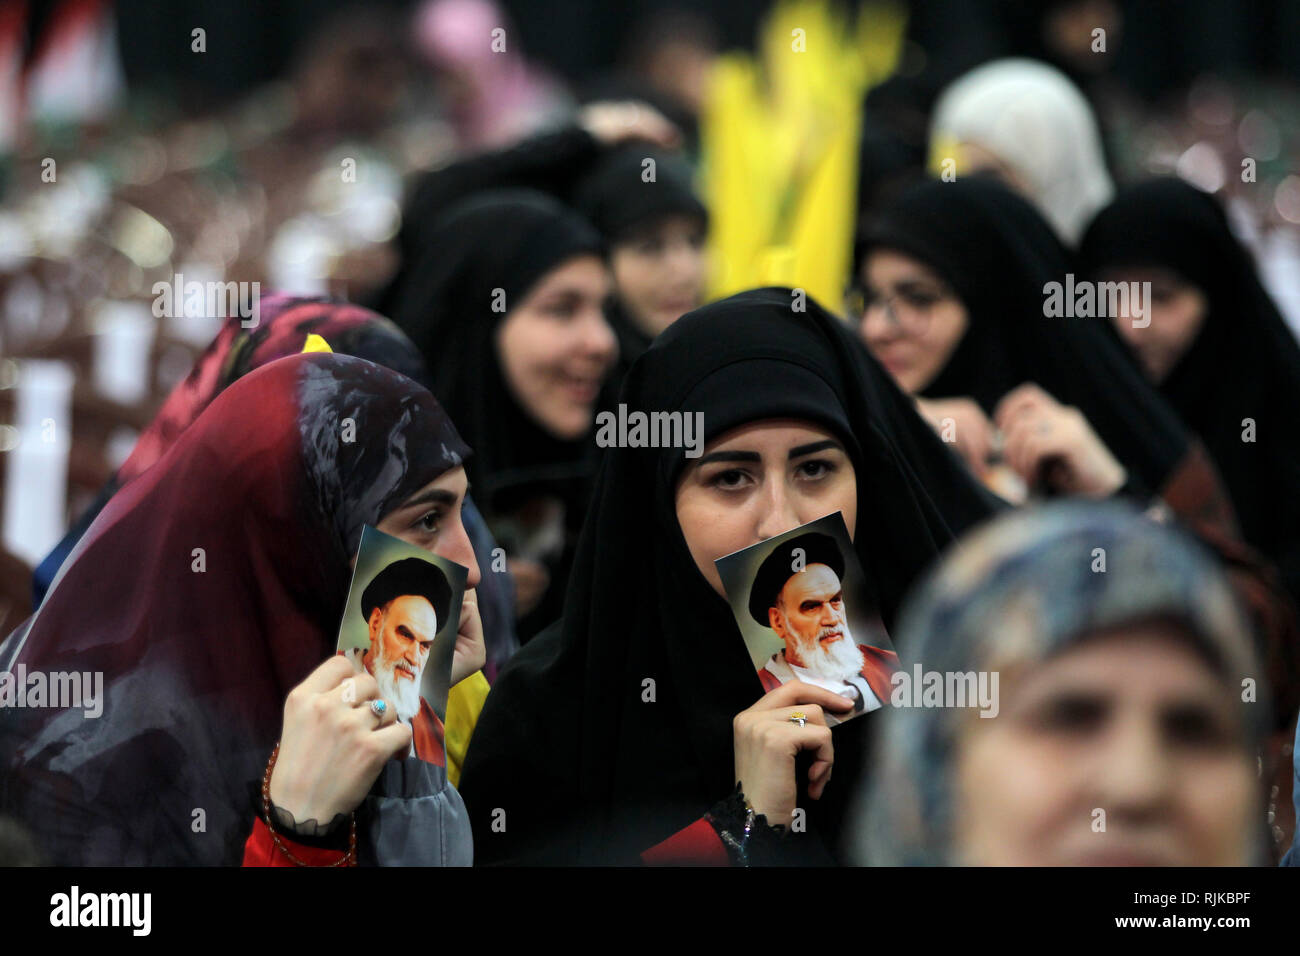 06 February 2019, Lebanon, Beirut: Supporters of Hezbollah, the pro-Iranian Lebanese Islamist political party and militant group, hold pictures of Ayatollah Khomeini, former Supreme Leader of Iran and leader of the 1979 Iranian Revolution, during a rally to mark the 40th anniversary of the Iranian Islamic Revolution which toppled Mohammad Reza Pahlavi, the last Shah of Iran. Photo: Marwan Naamani/dpa - Stock Image